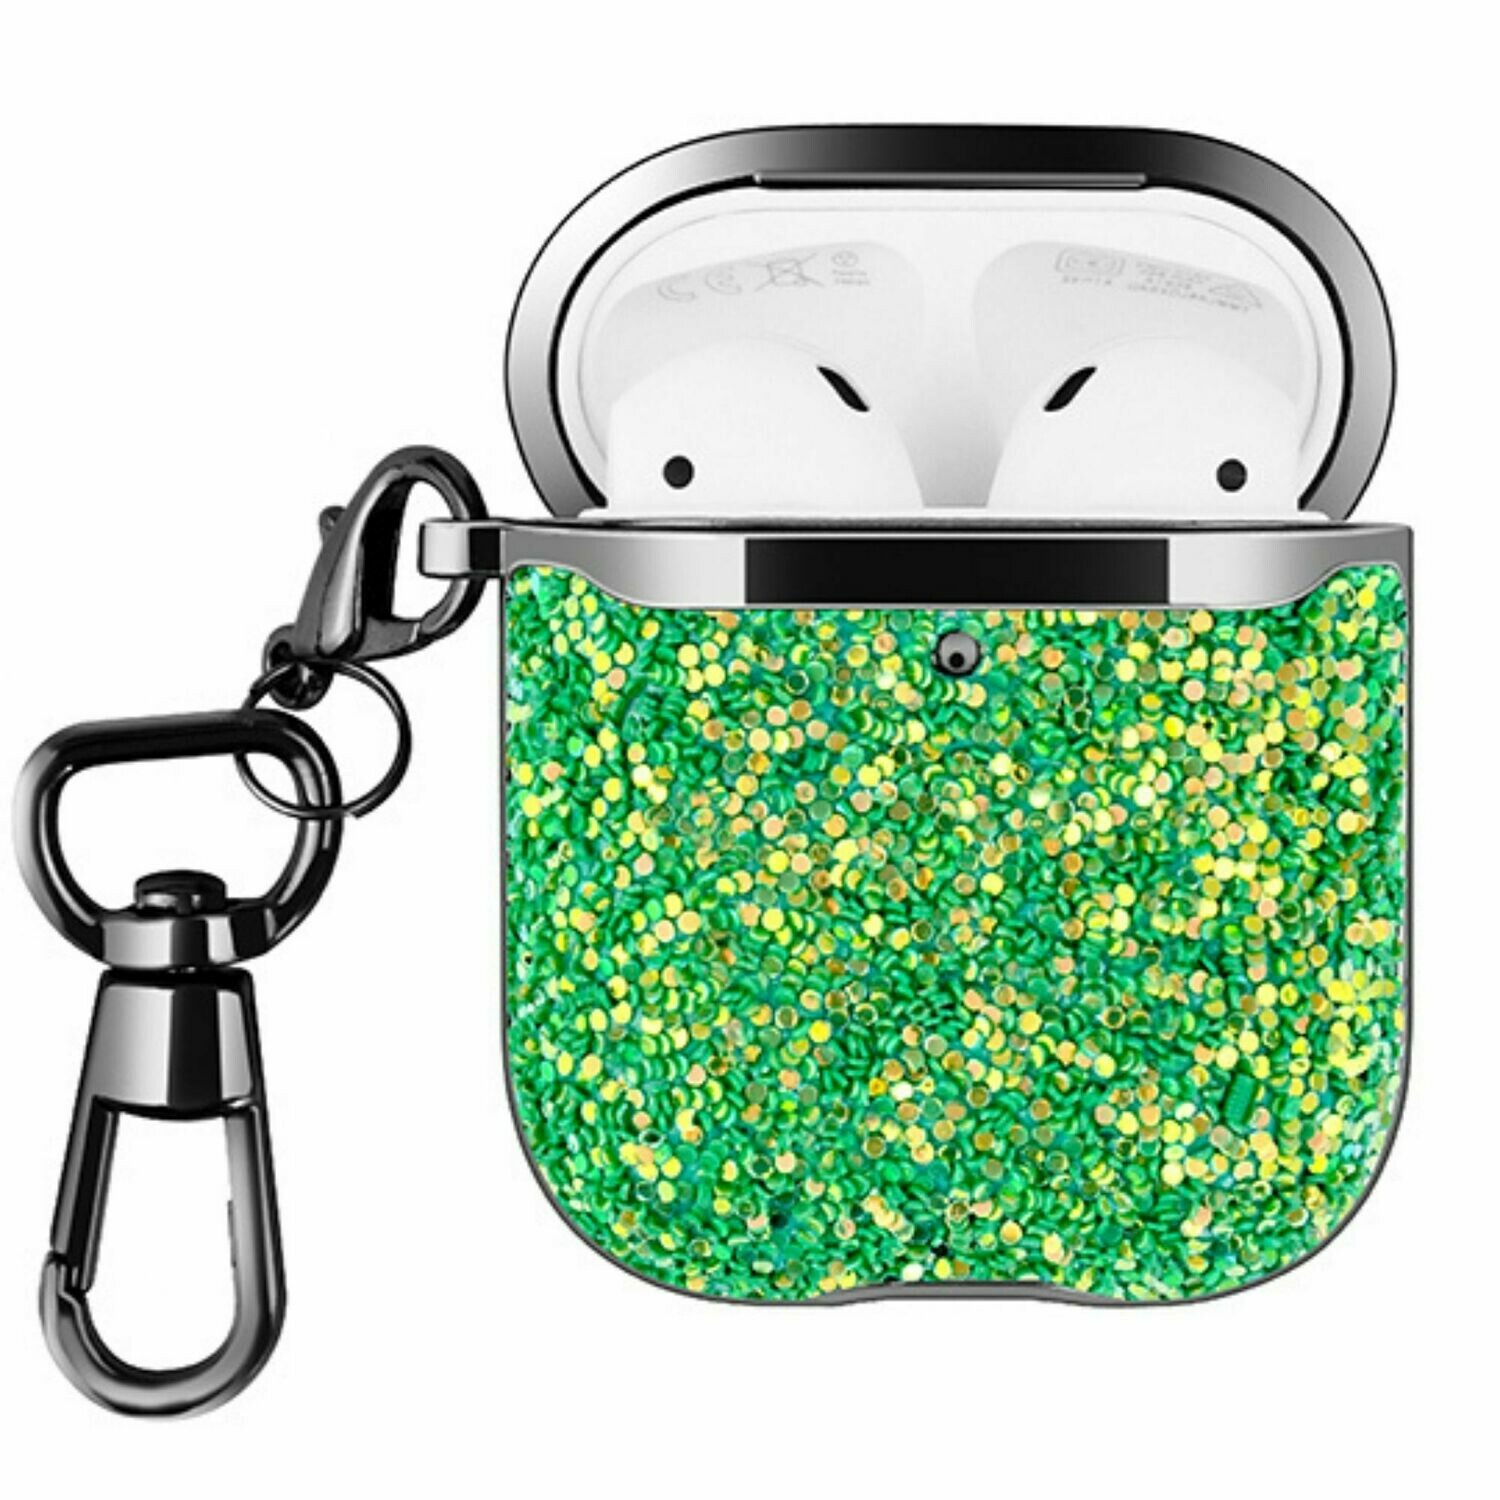 For Apple Airpods 1 2 Hard Case Cover Superior Quality Rhinestone Design TPU Protective | Shock Proof (Green Dazzle)